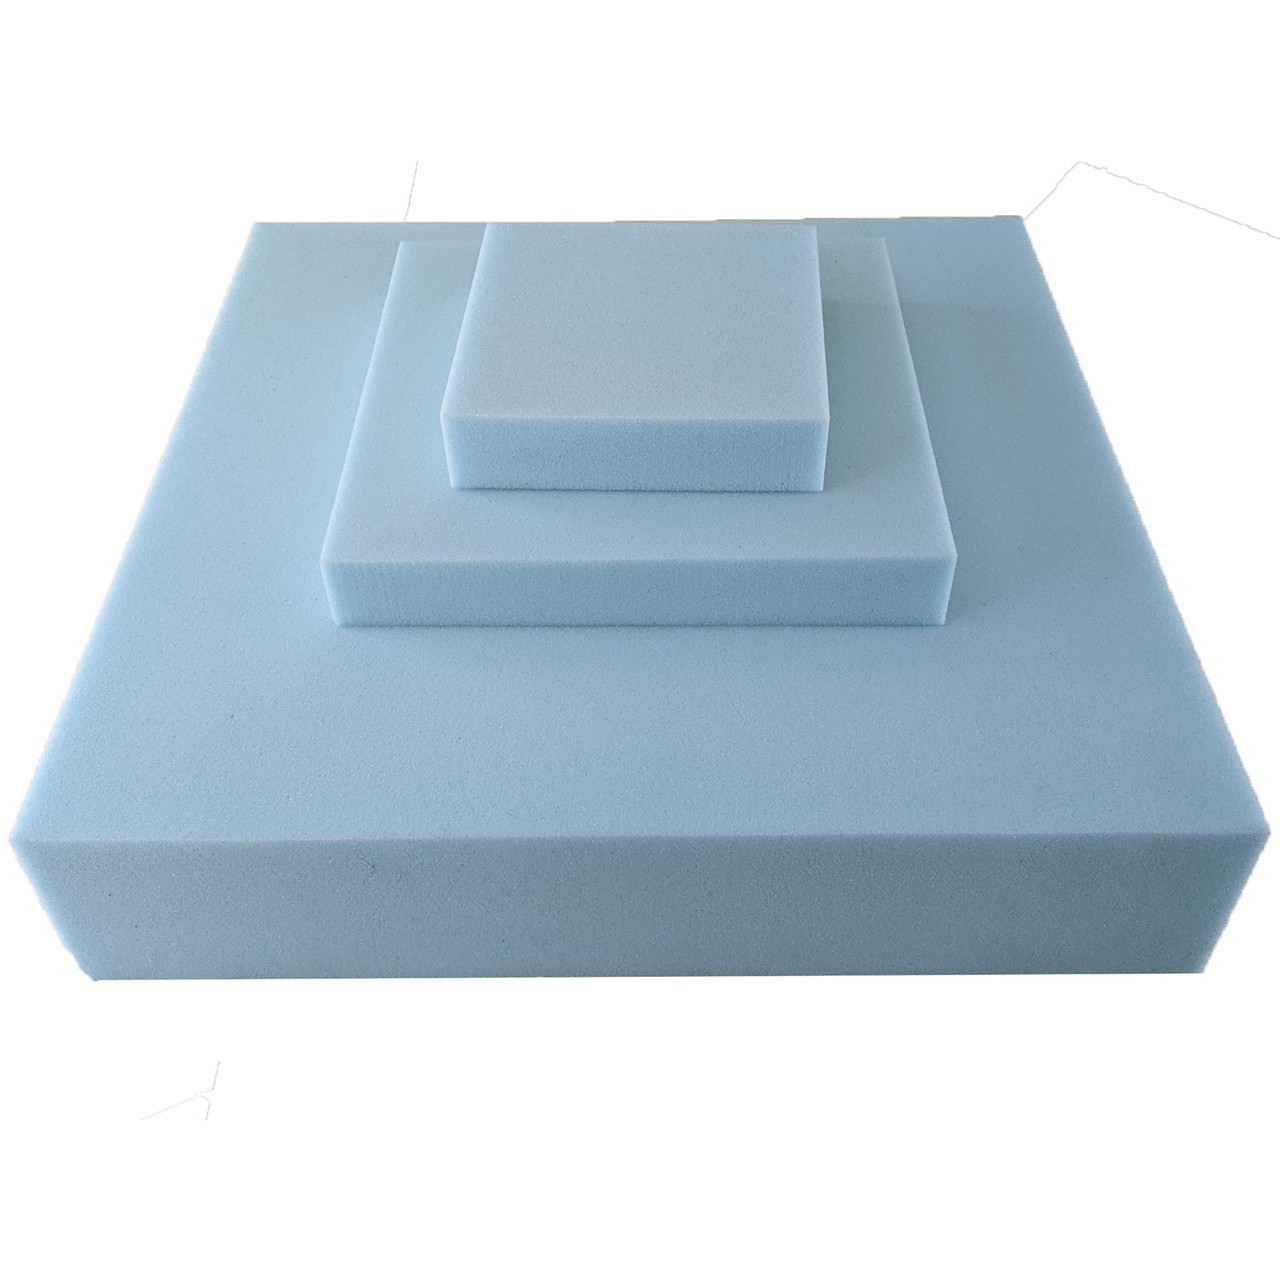 Square Custom foam pads for your  Upholstery, Cushion Pads.